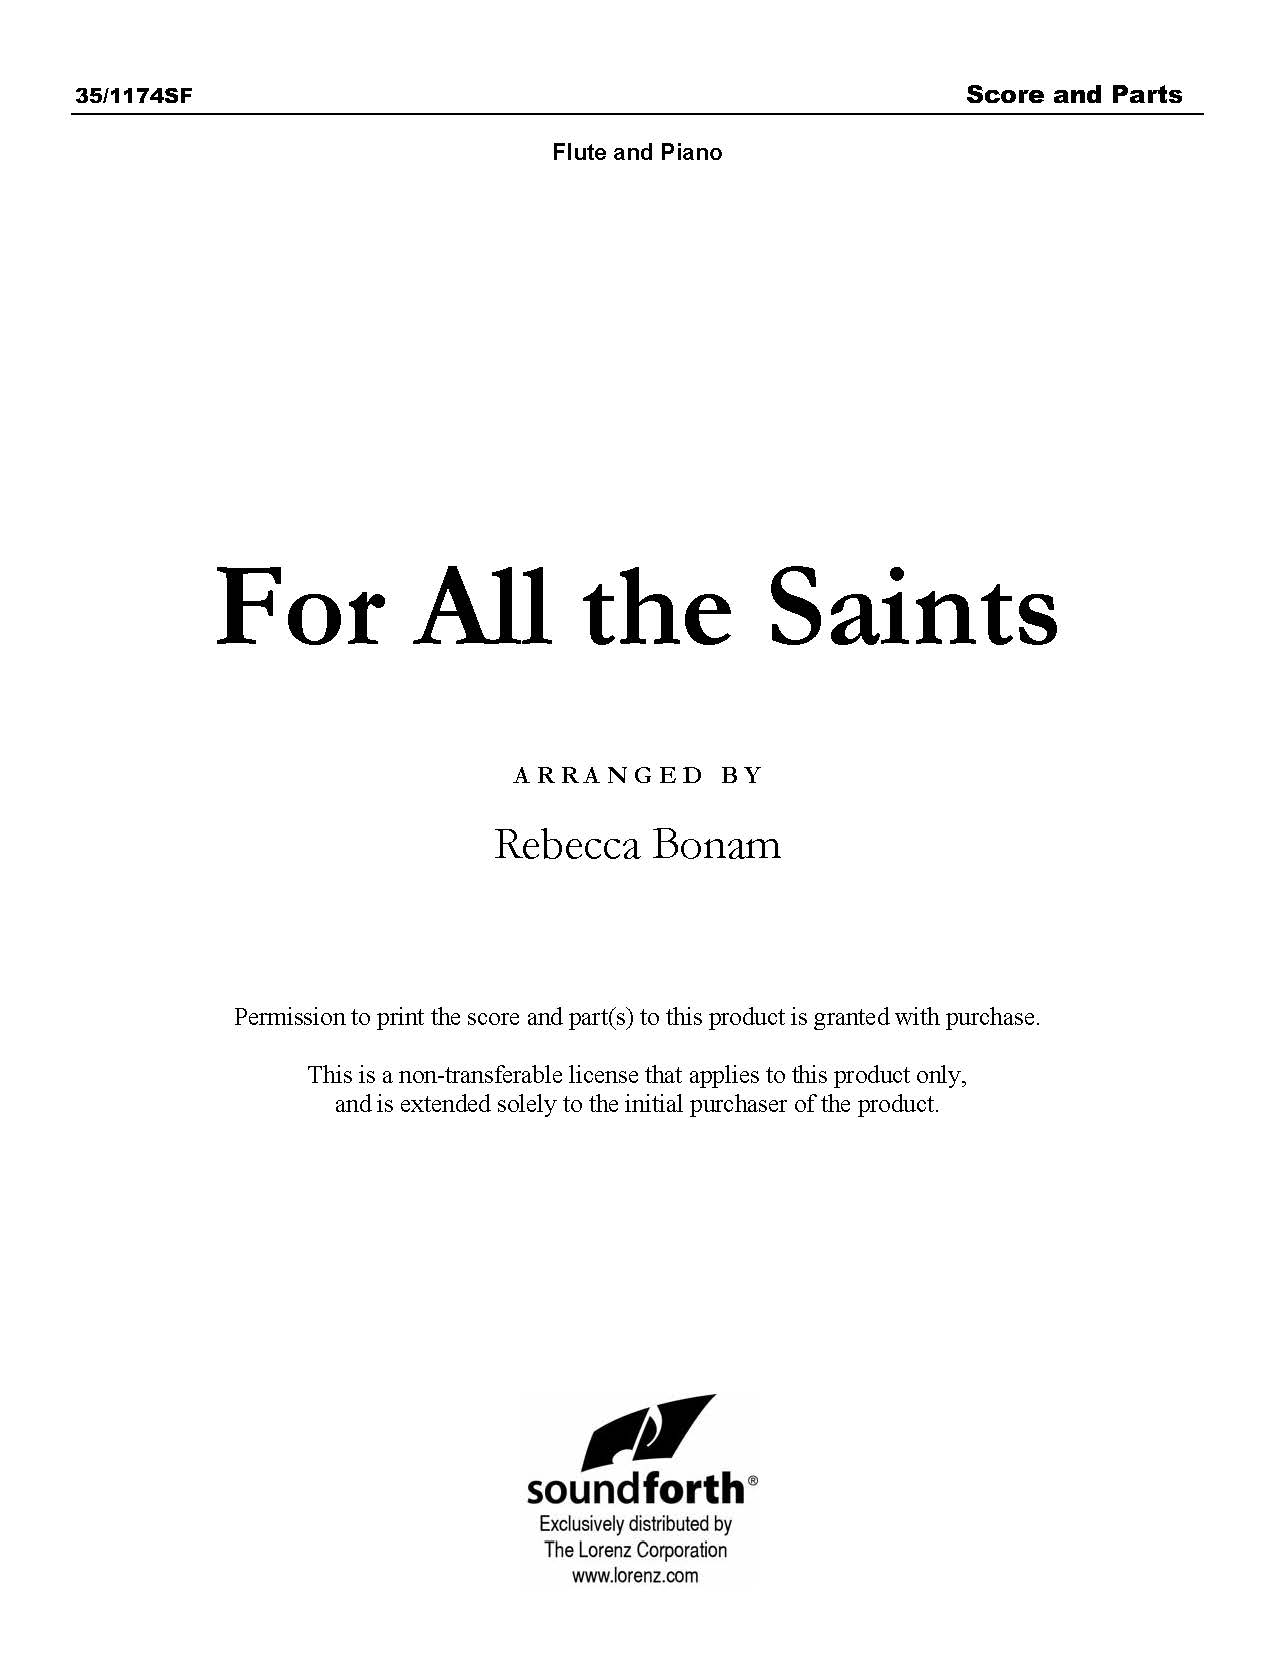 For All the Saints (Digital Delivery)